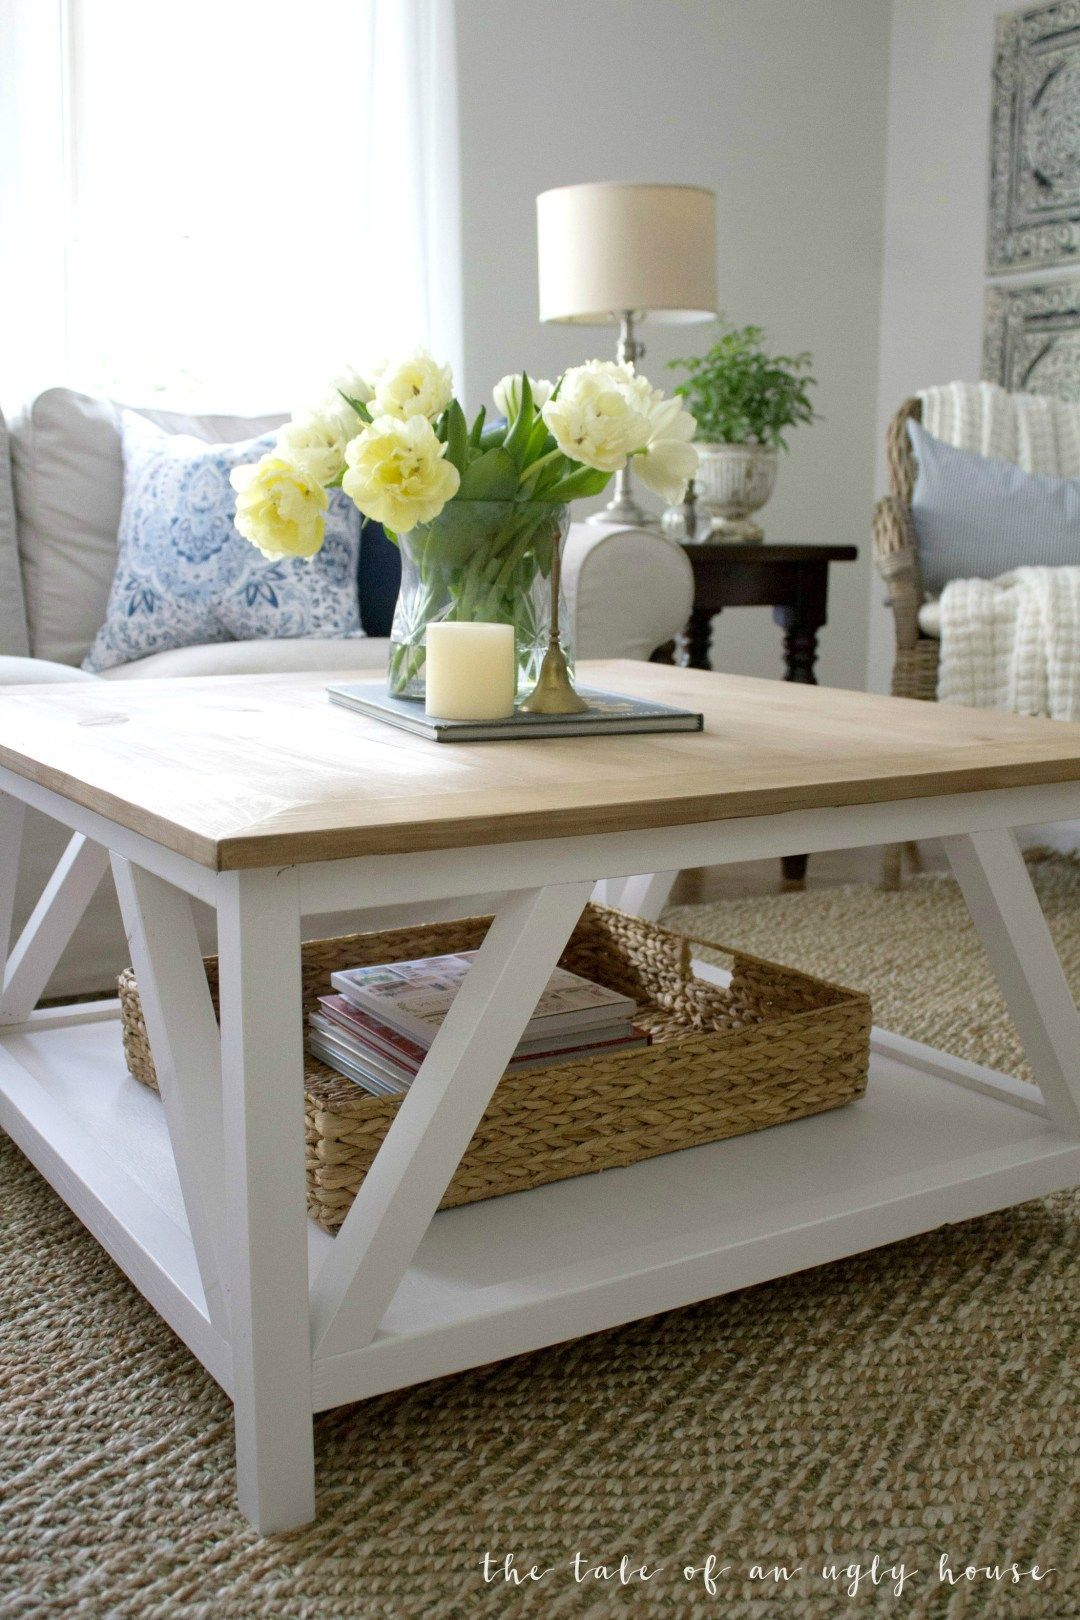 diy modern farmhouse coffee table house deco decorating end tables square sincerely marie designs ashley ott unfinished small desk console cabinet what pallet furniture riverside